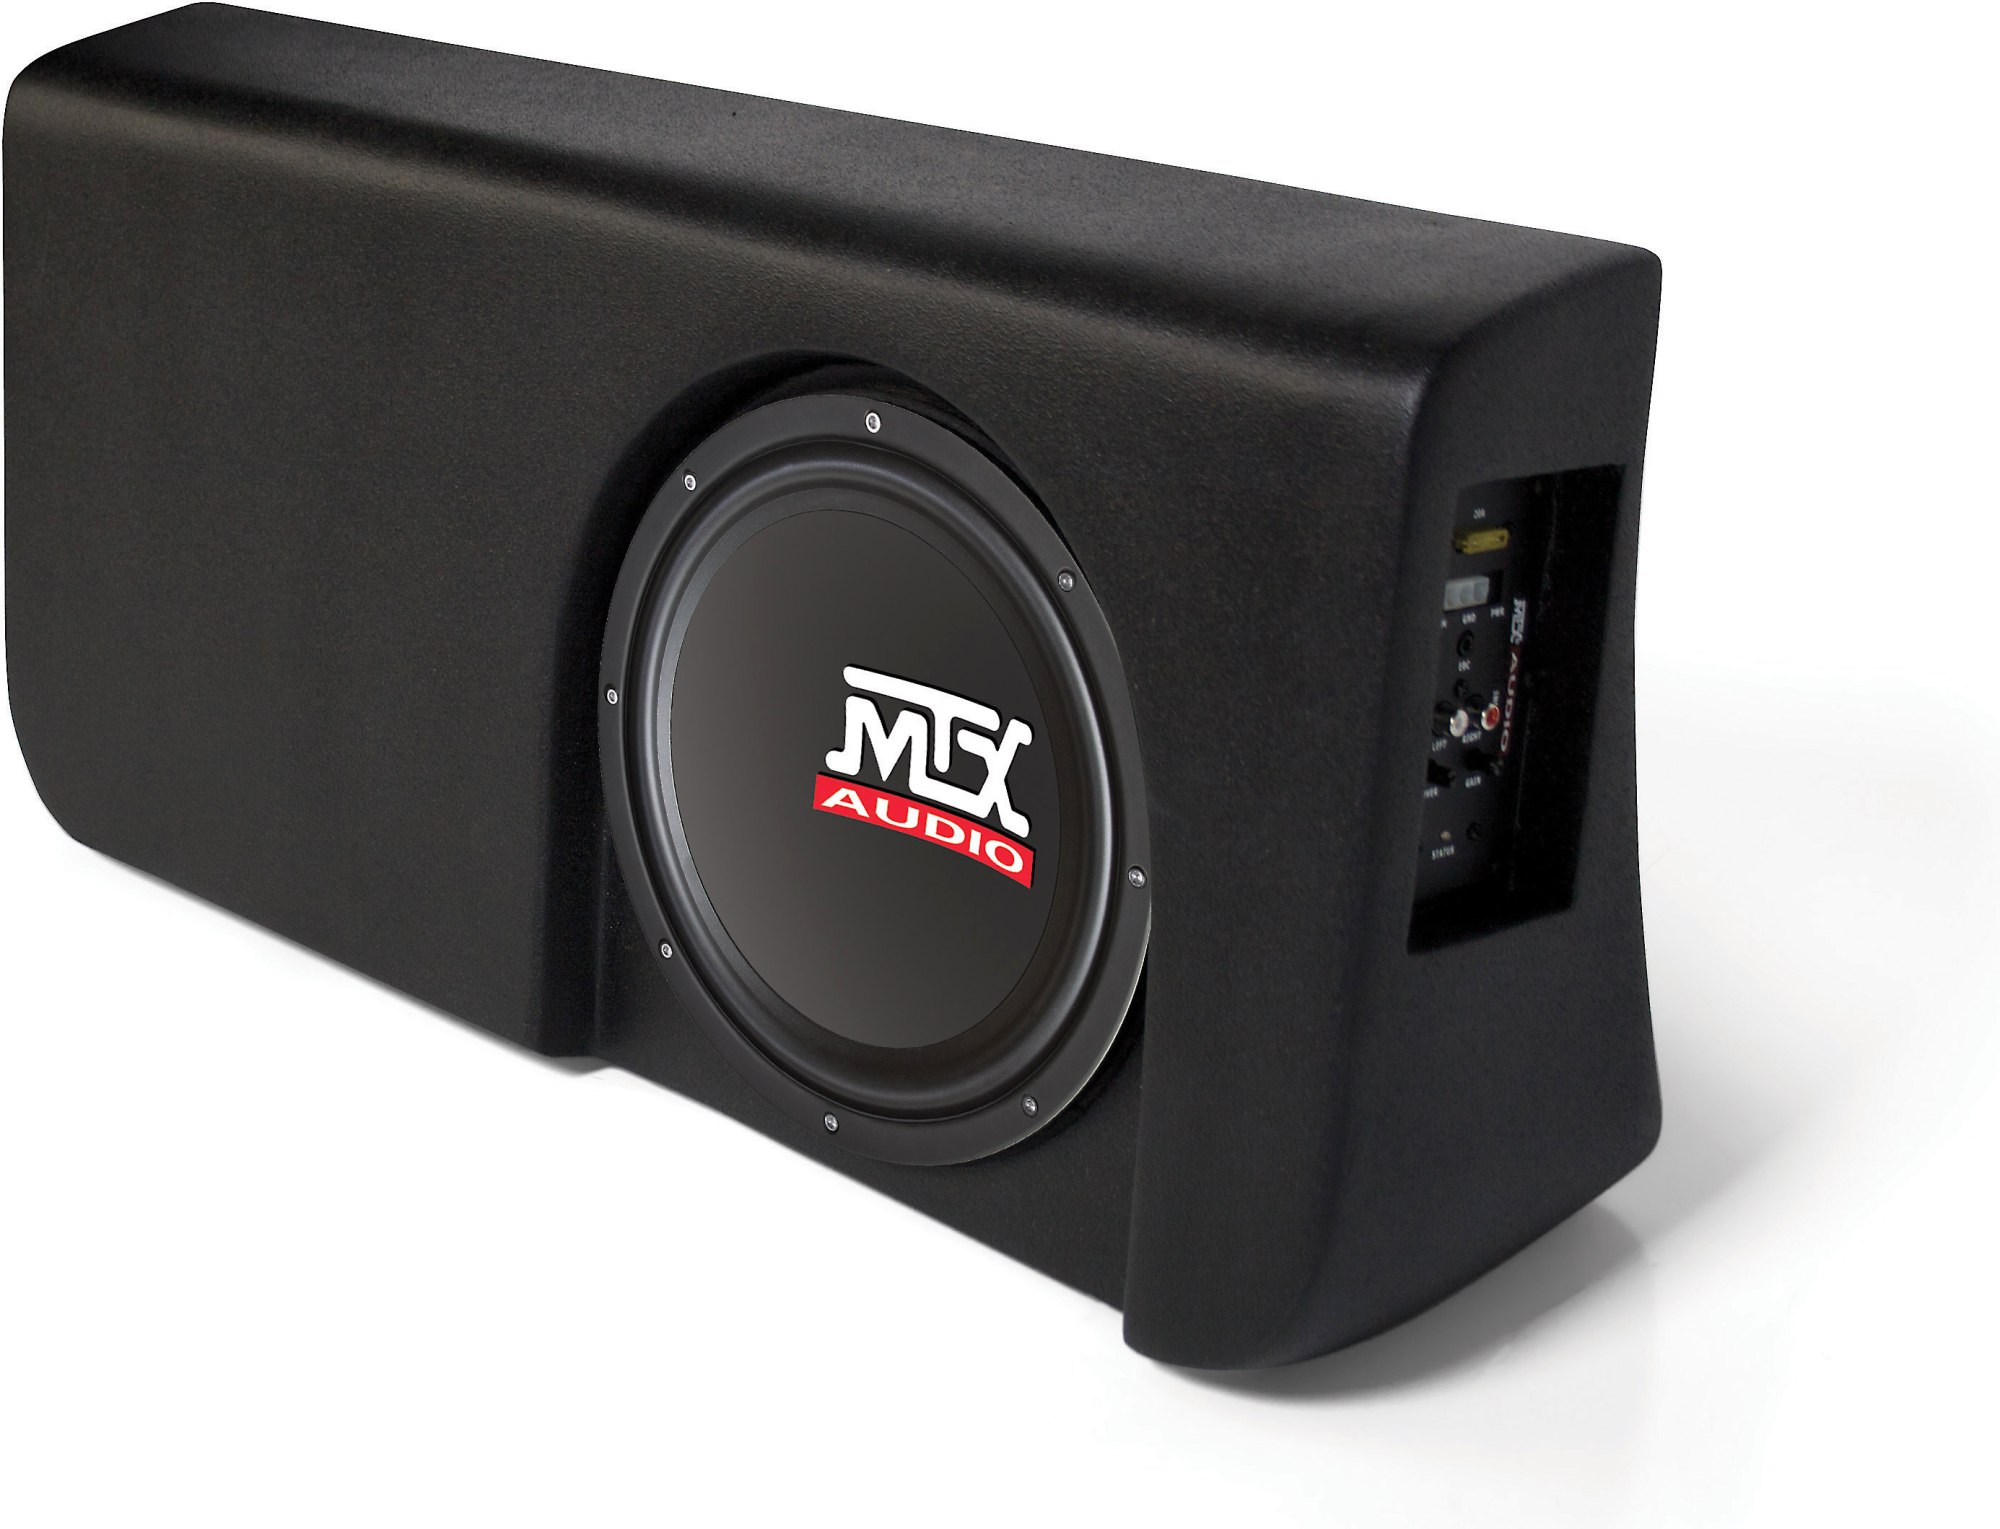 hight resolution of mtx amplified thunderform custom fit powered subwoofer u2014 fits 2009mtx amplified thunderform custom fit powered